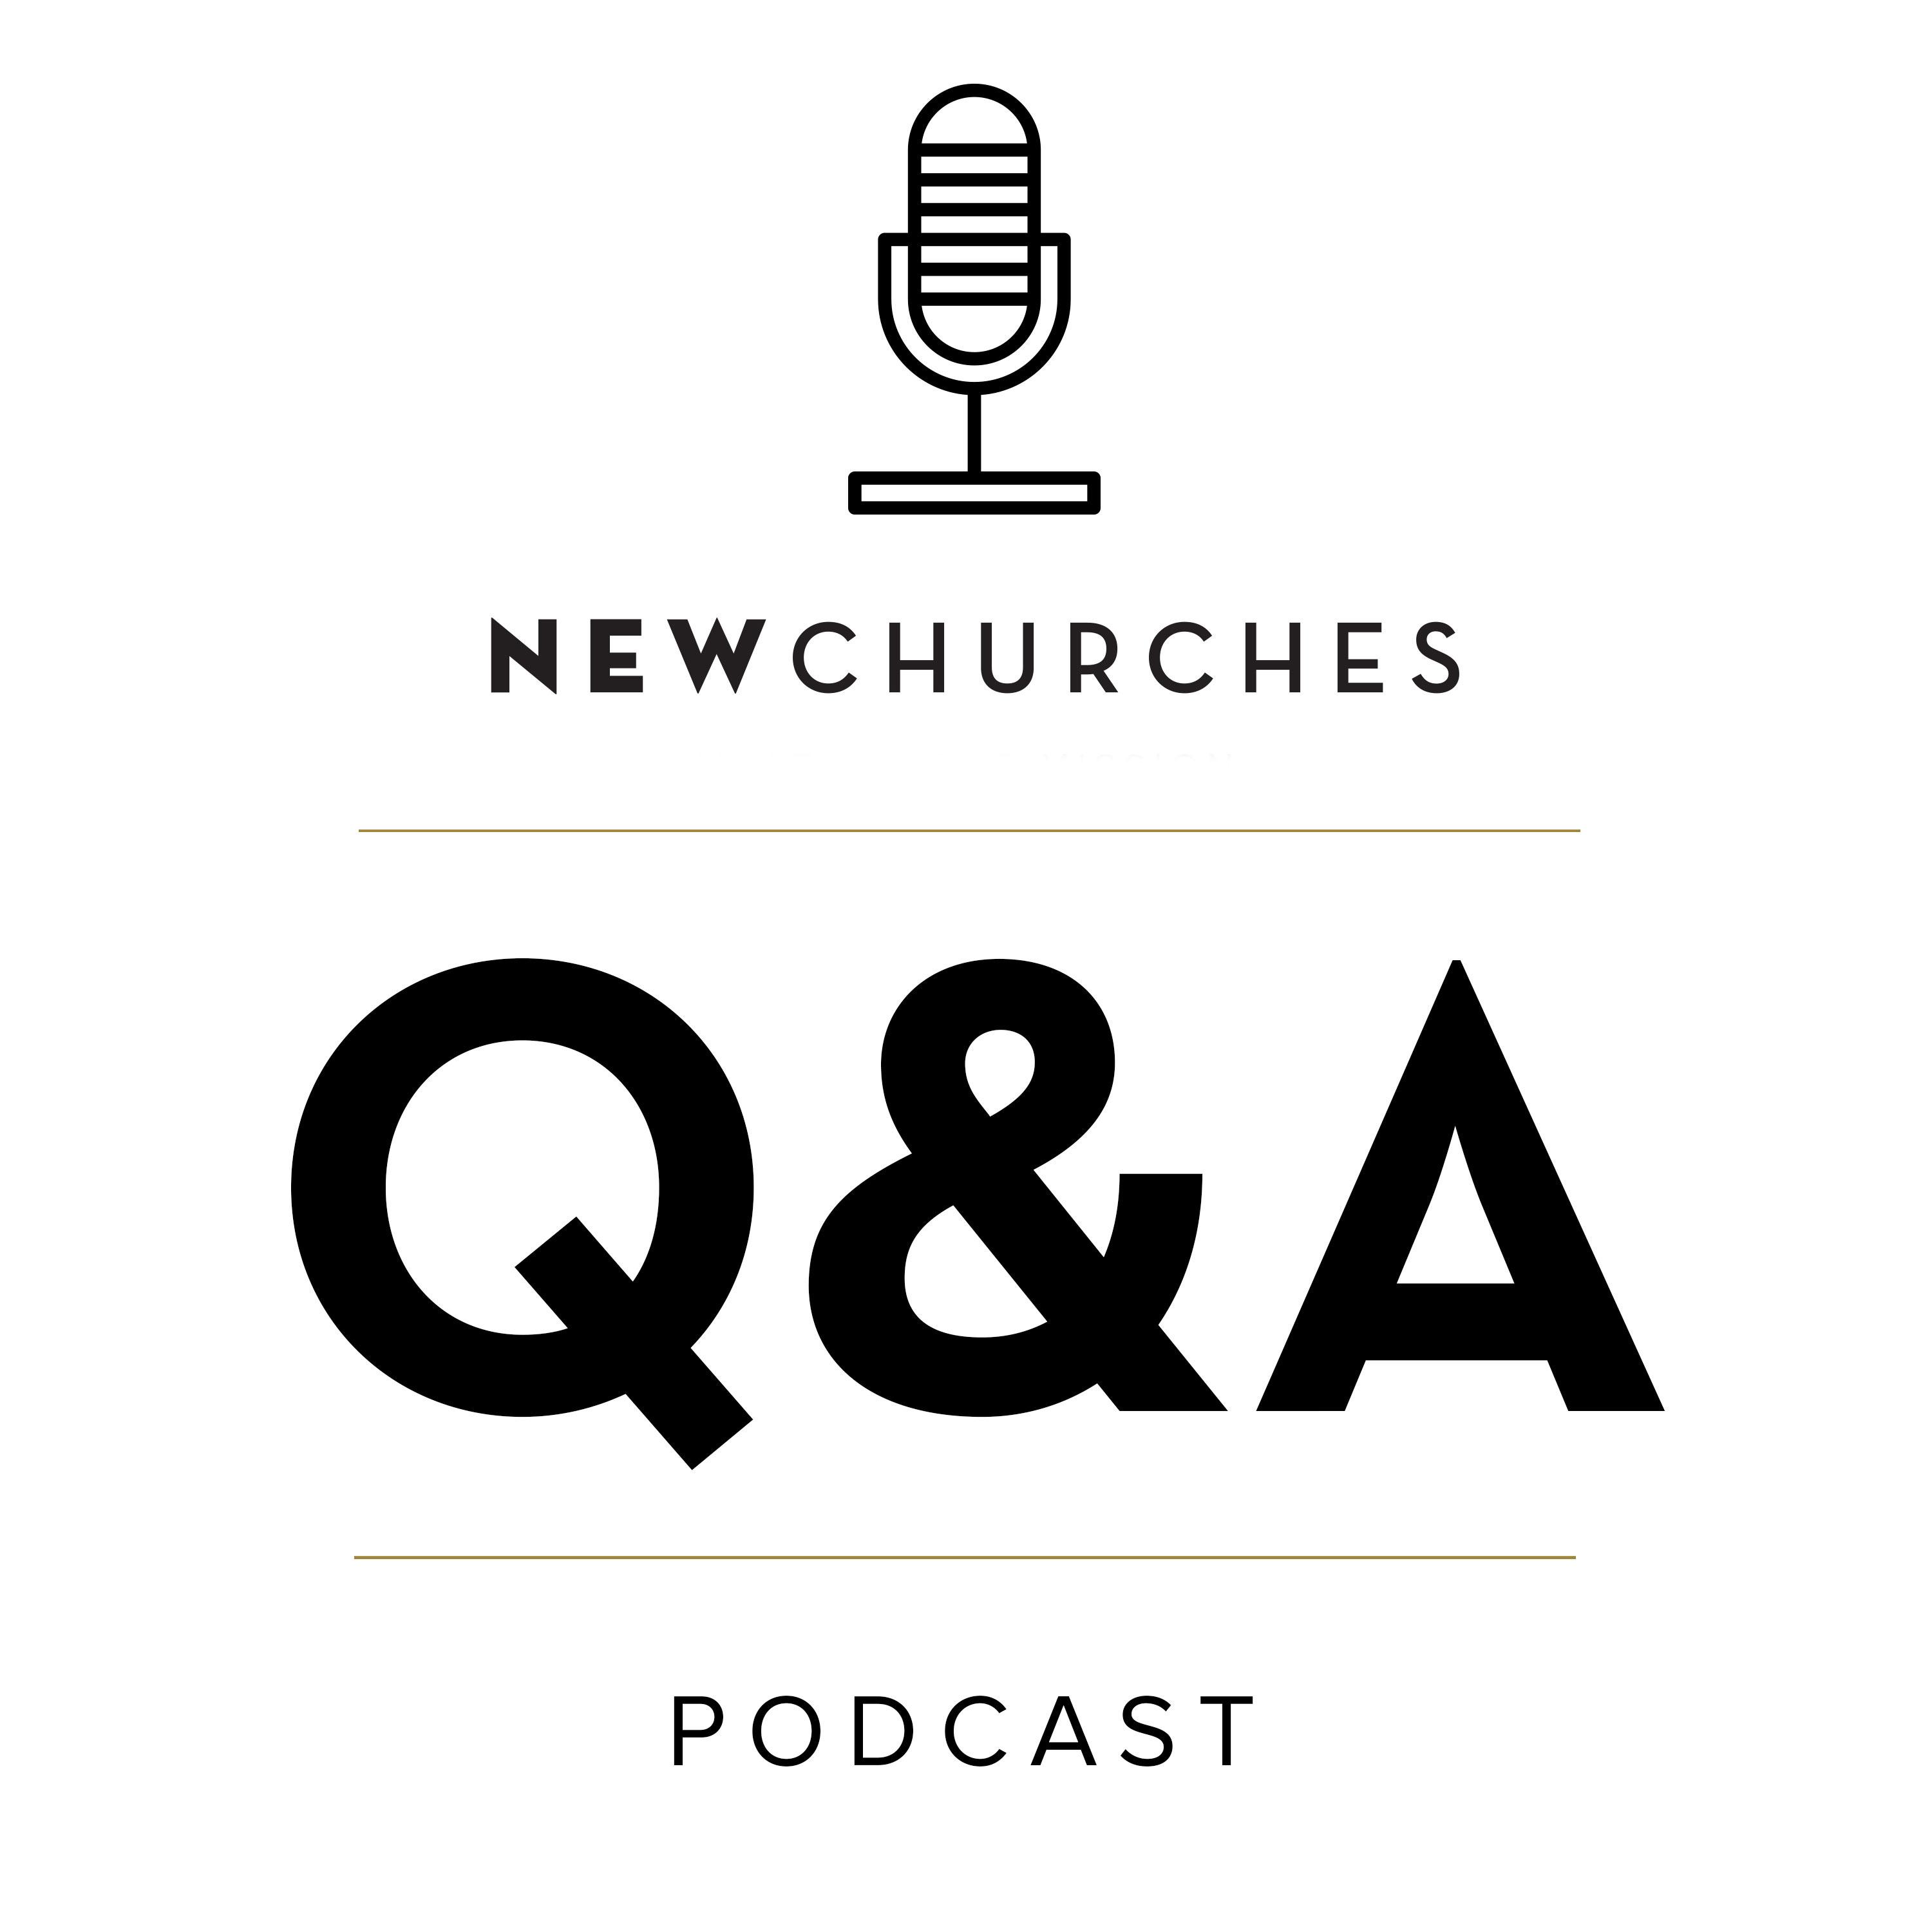 New Churches Q&A Podcast on Church Planting, Multisite, Multiplication, Leadership Development, and Discipleship